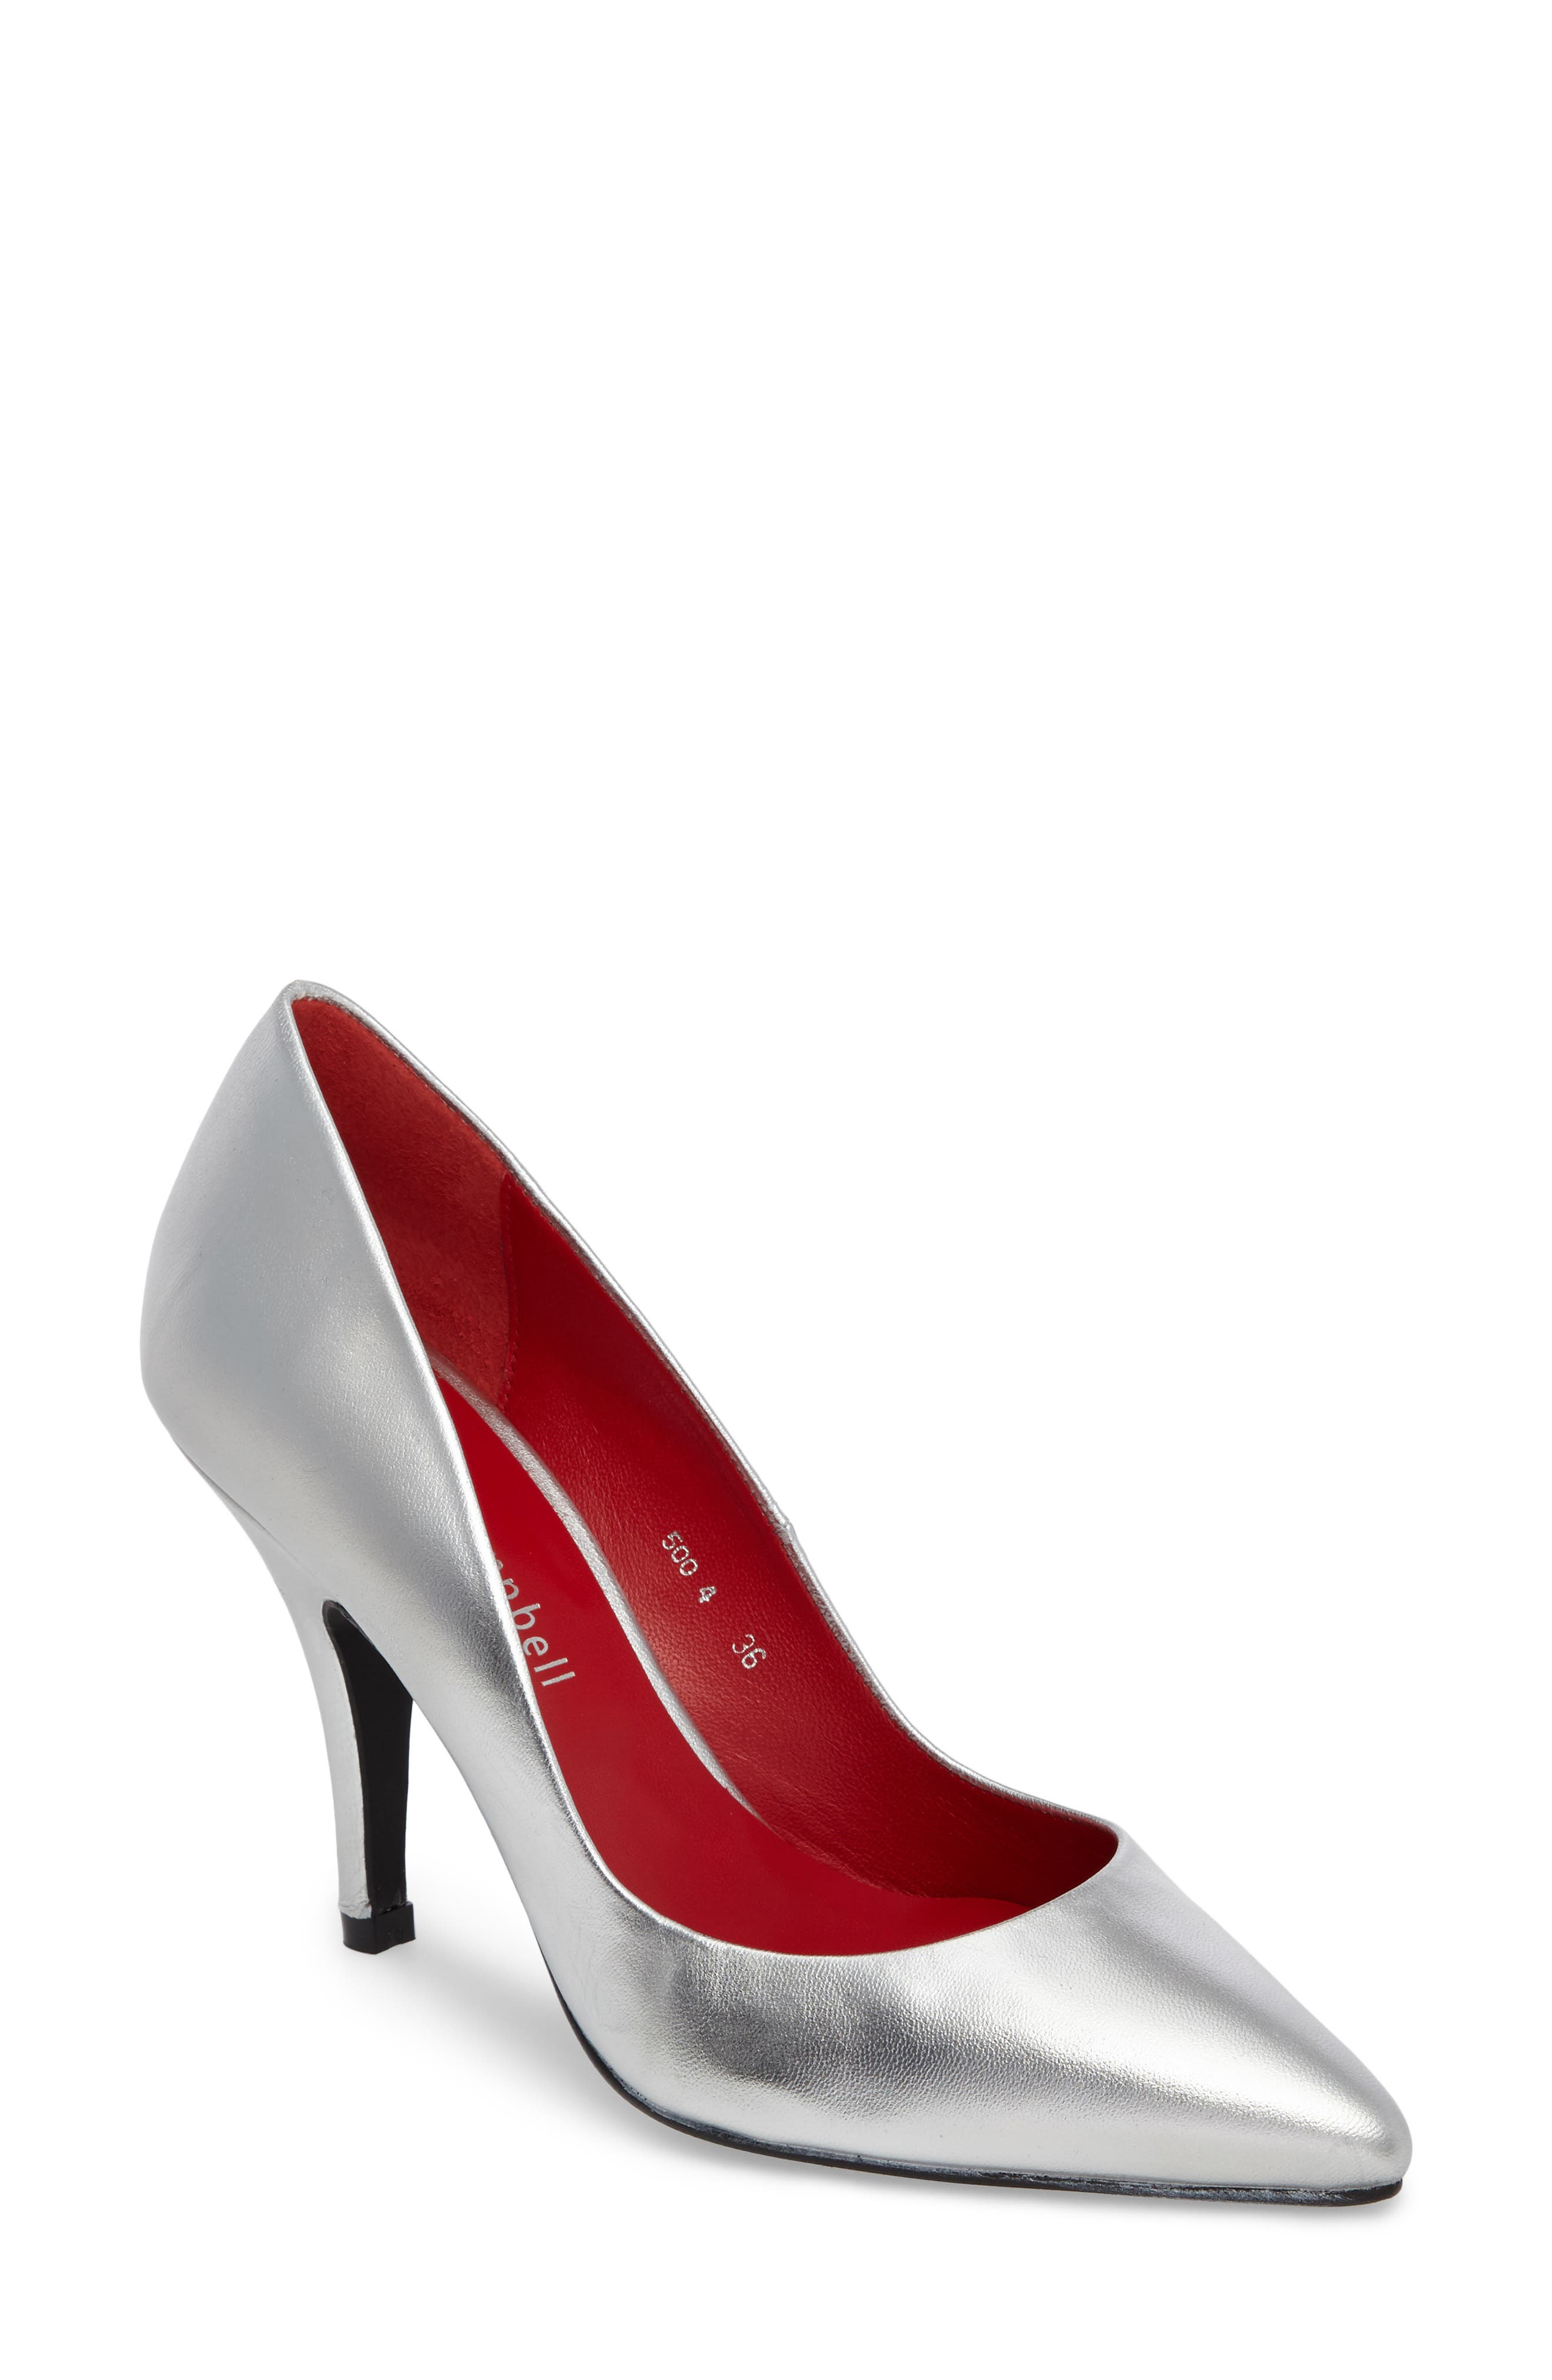 Sachi Pointy Toe Pump,                         Main,                         color, Silver